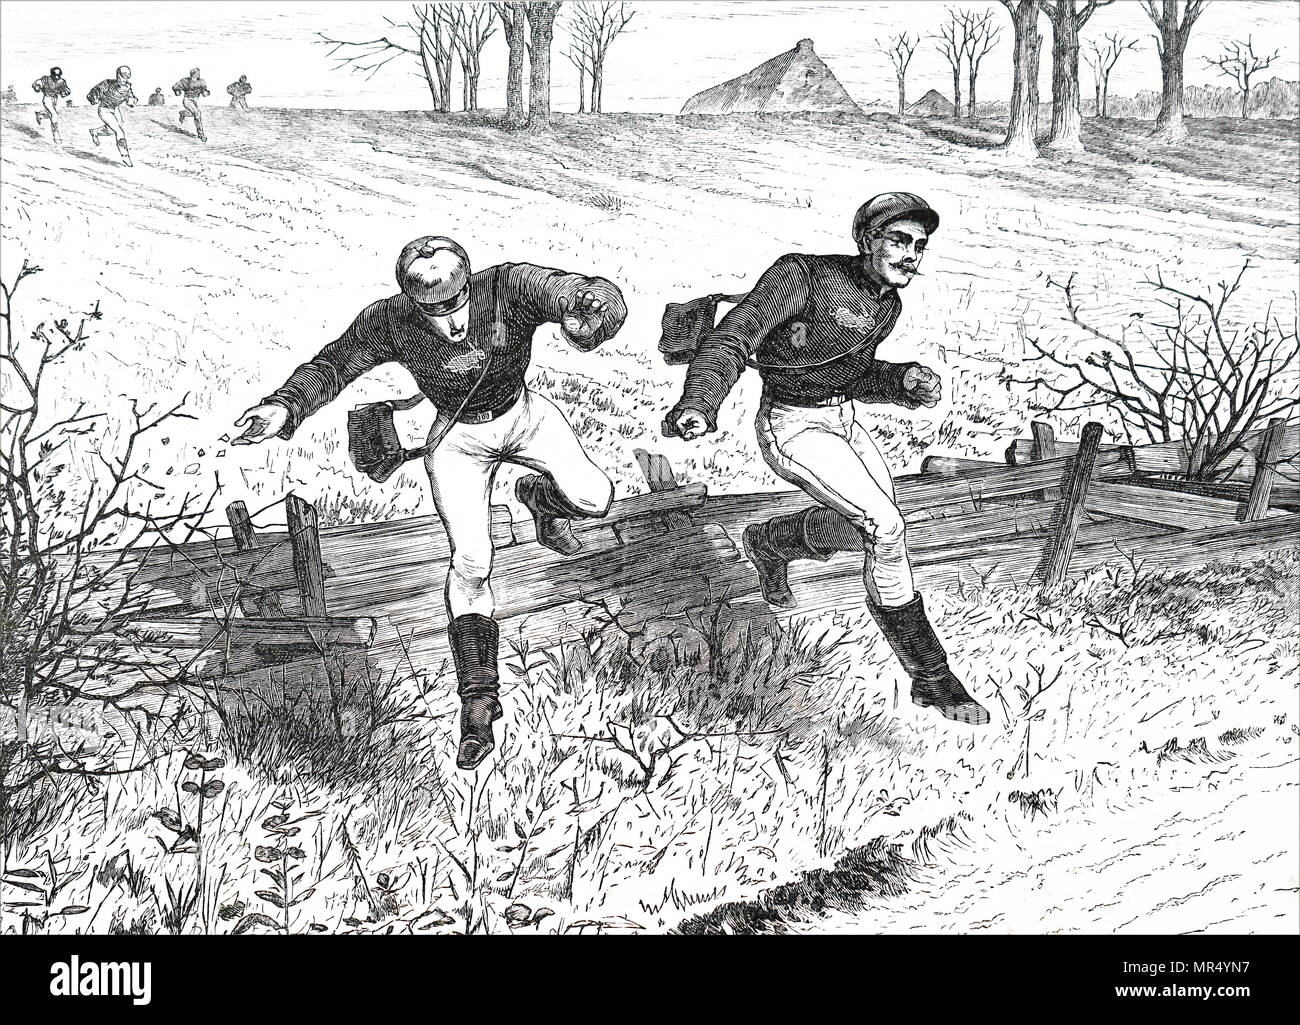 Illustration depicting members of the Thames Hare and Hounds Club taking part in a paper chase at Roehampton. Paper Chase, a racing game played outdoors (best played within a wood or even a shrubbery maze) with any number of players. Dated 19th century - Stock Image